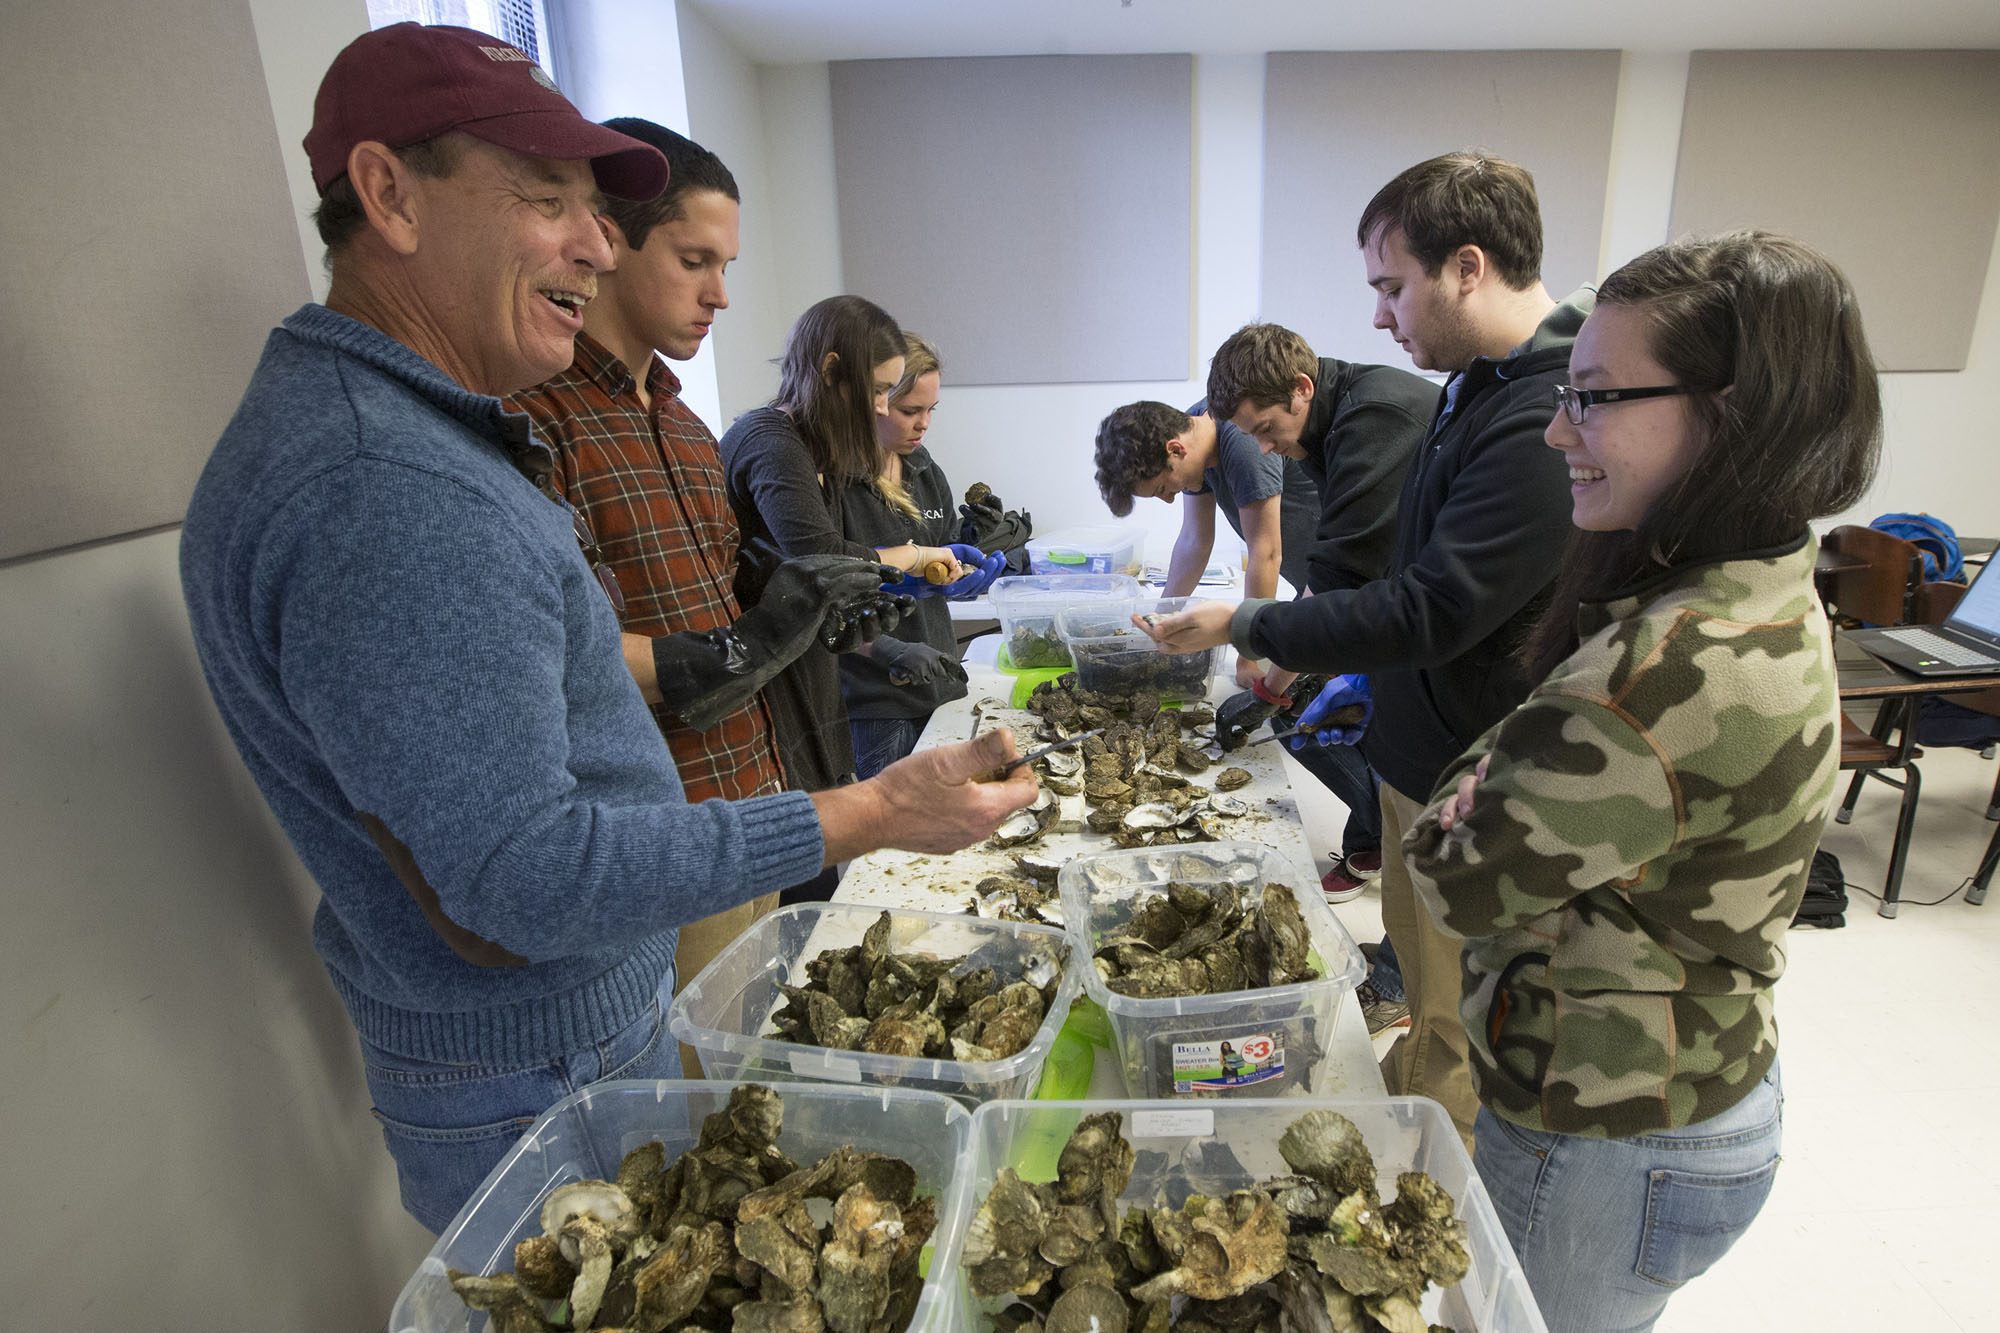 Waterman Philip Shahan discusses oysters with student Kristen Eppard.